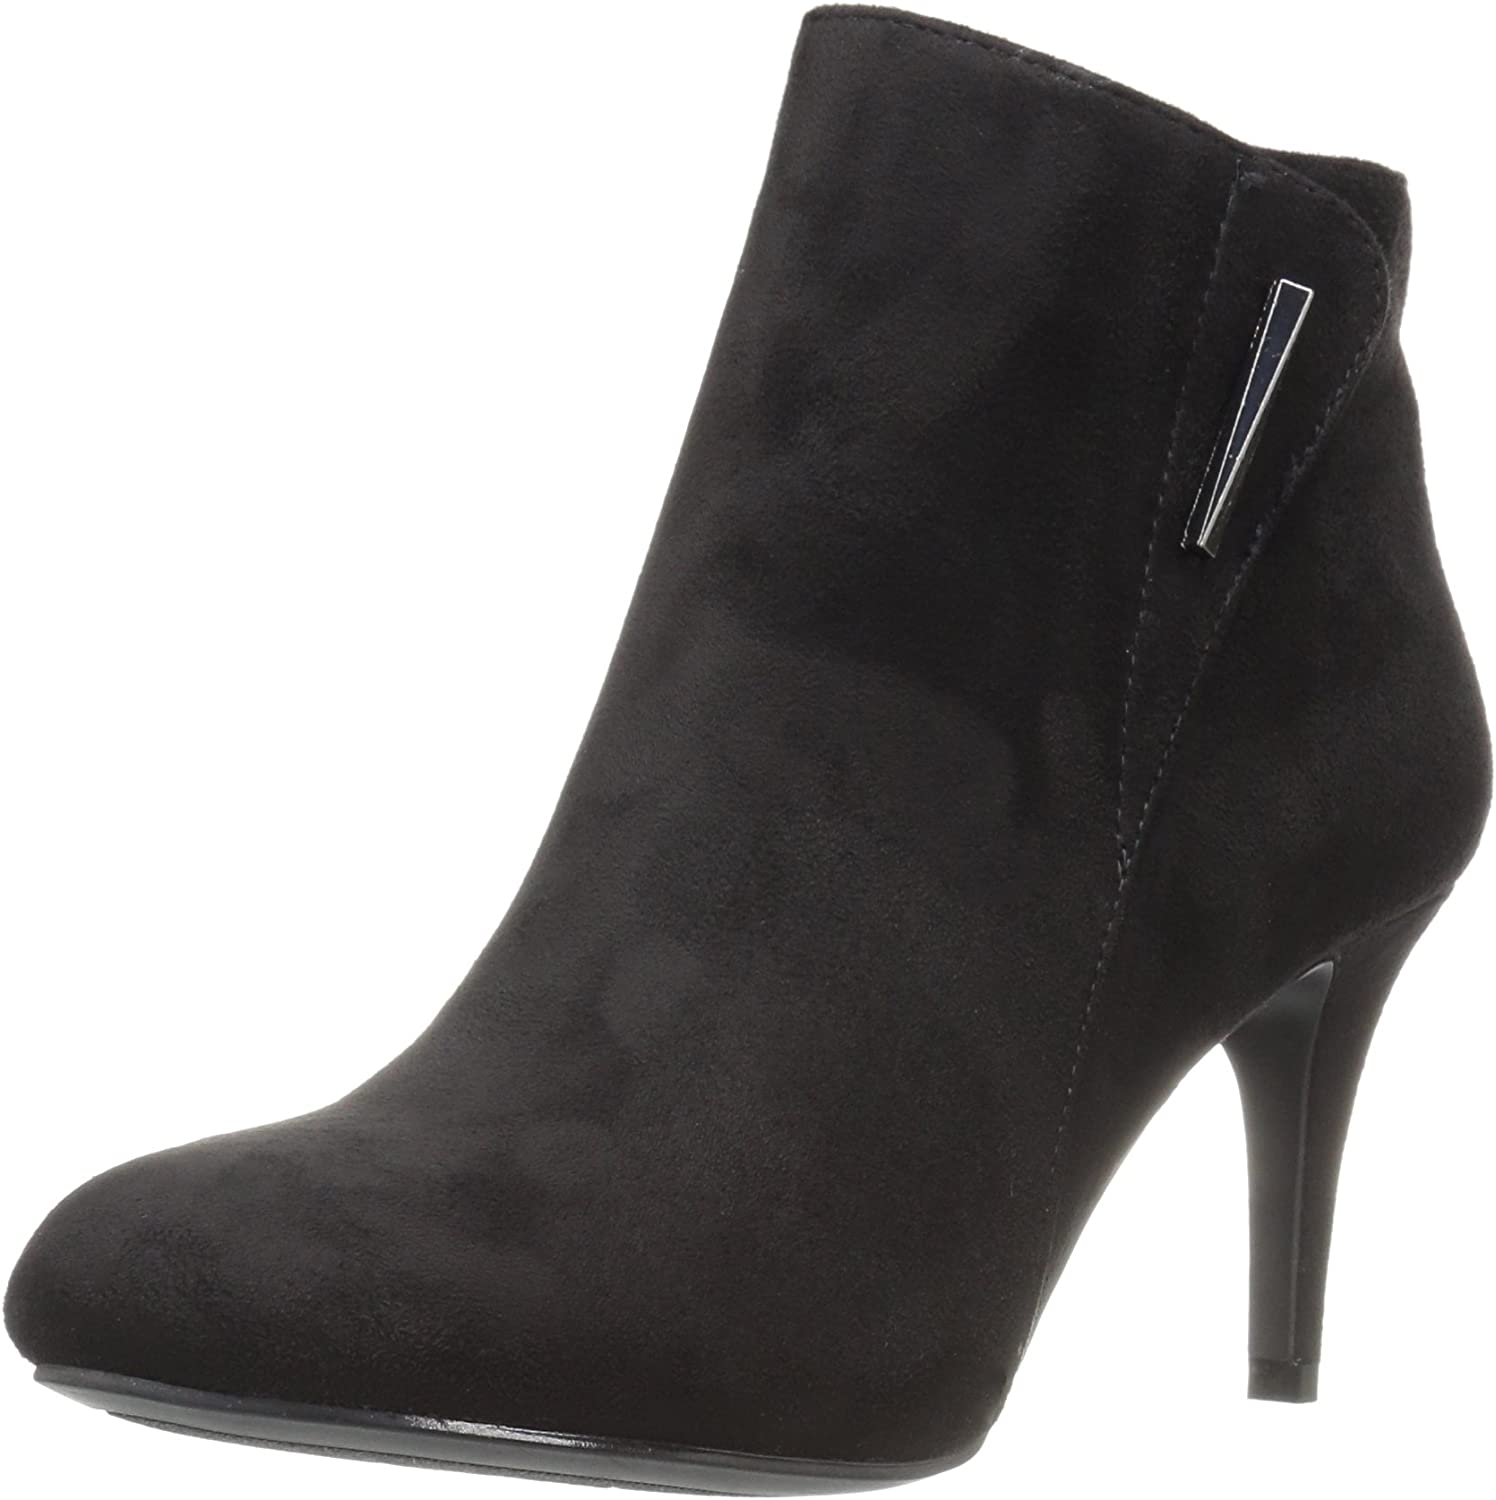 CL by Chinese Laundry Women's Nisha Bootie